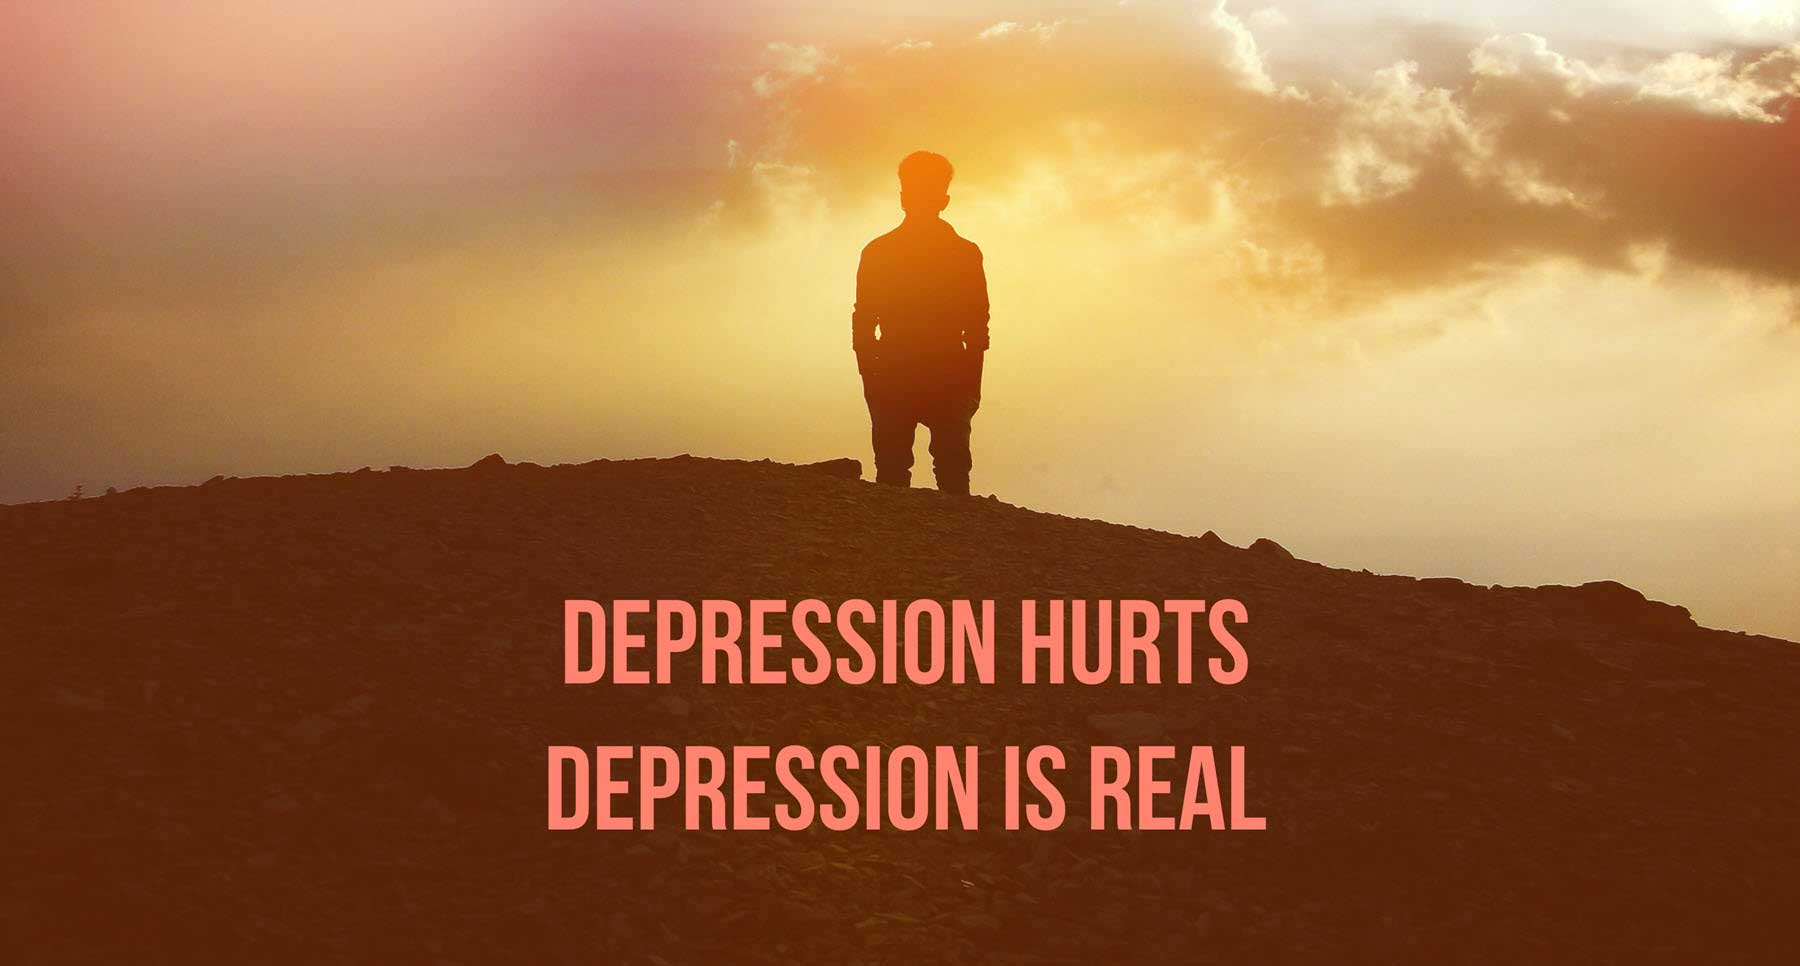 Depression-Hurts-Depression-is-Real-Signs-Symptoms-and-Tips-to-Overcome-Depression-from-TheHopeLine-